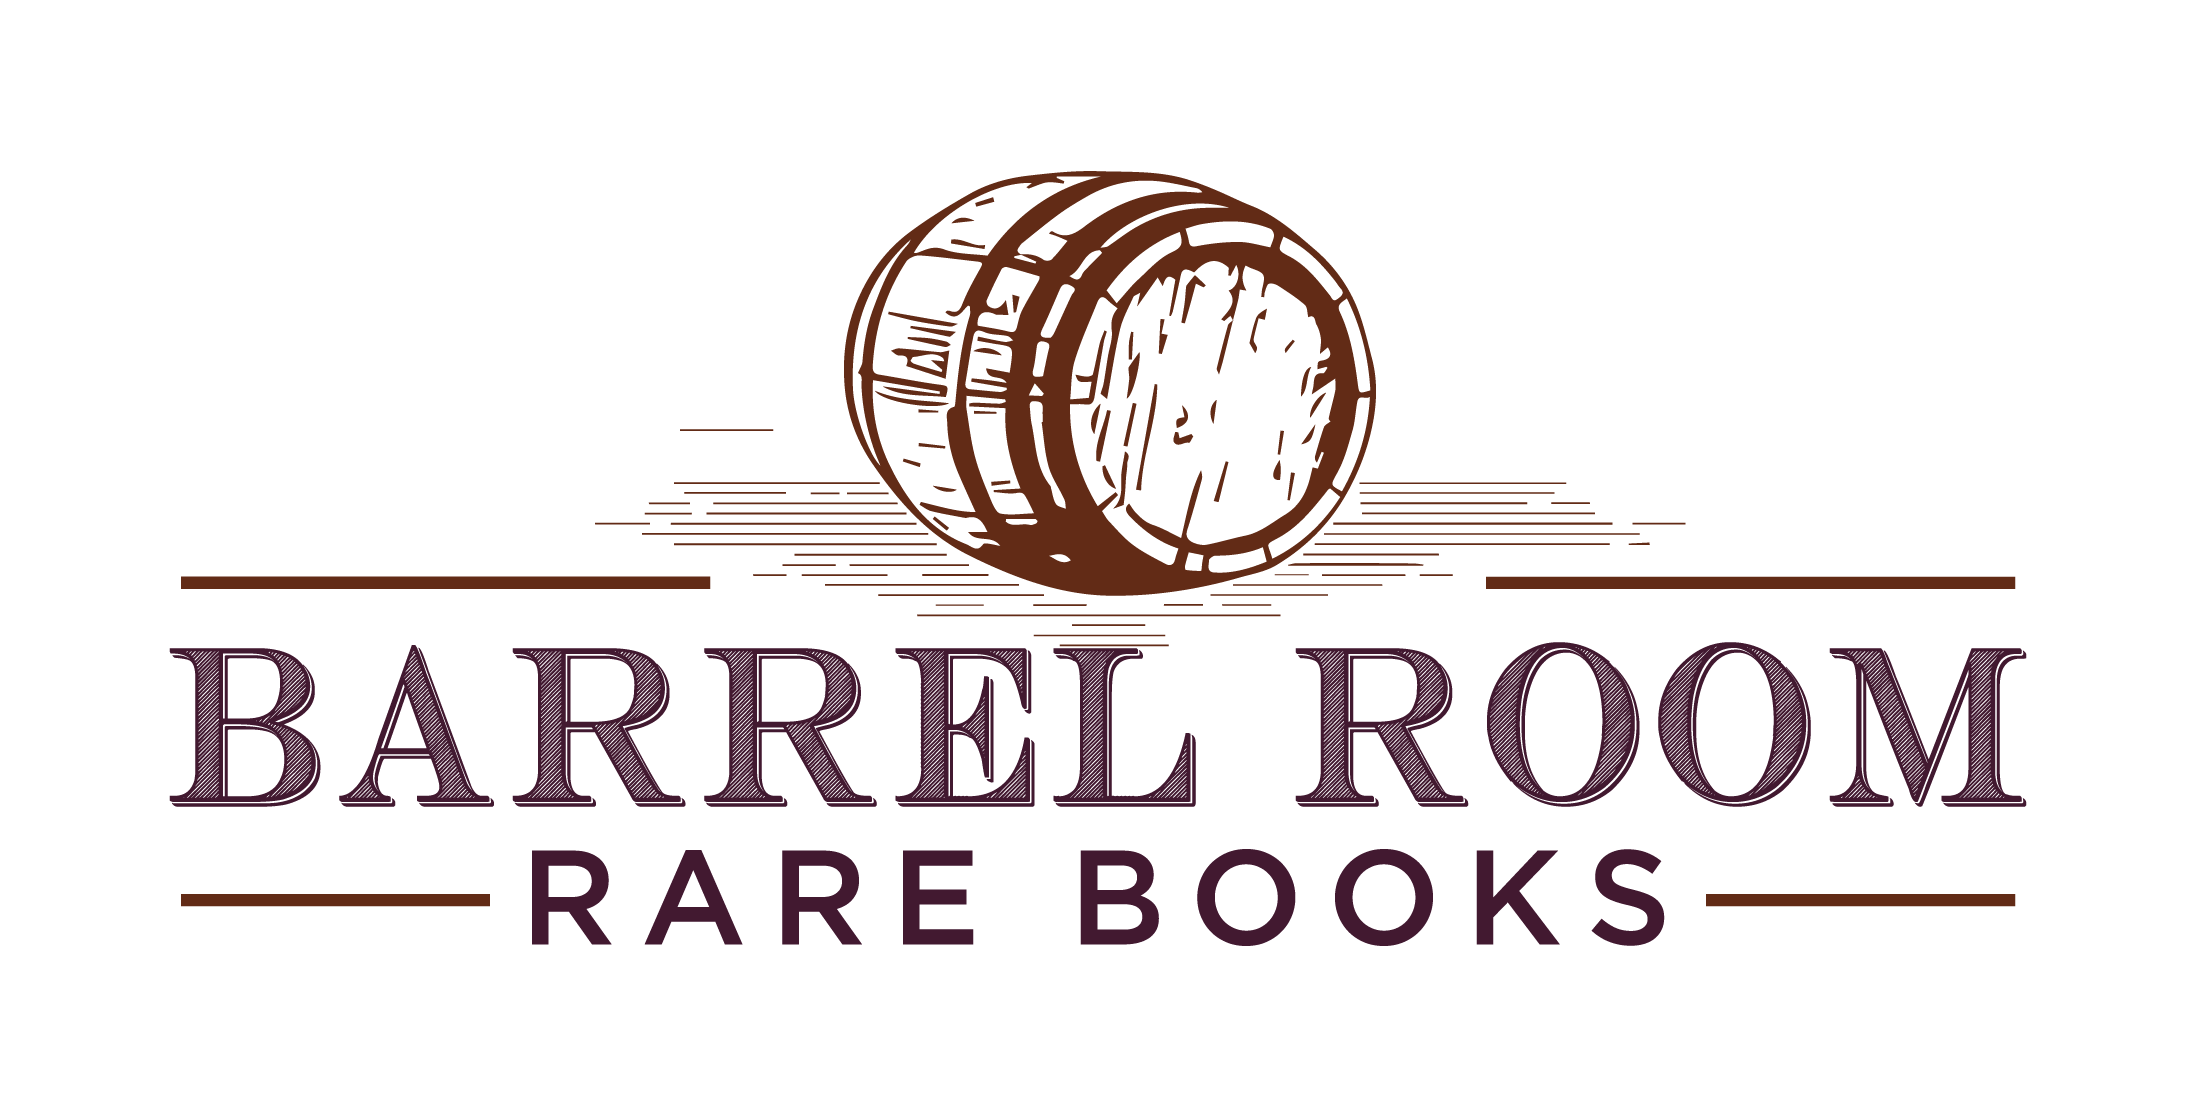 Barrel Room Books